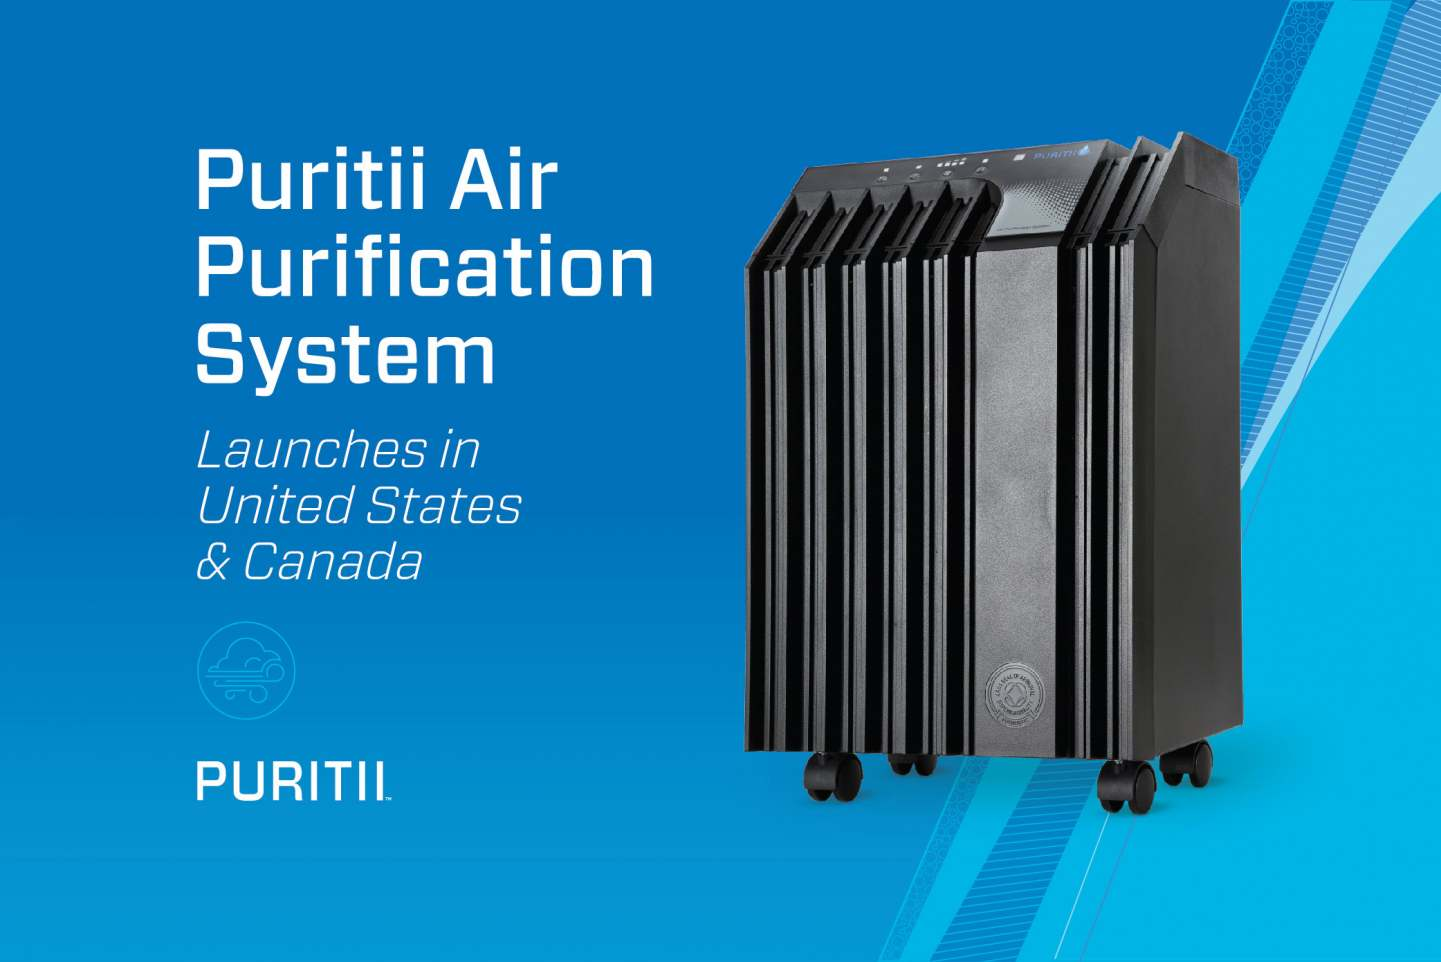 Puritii Air Purification System